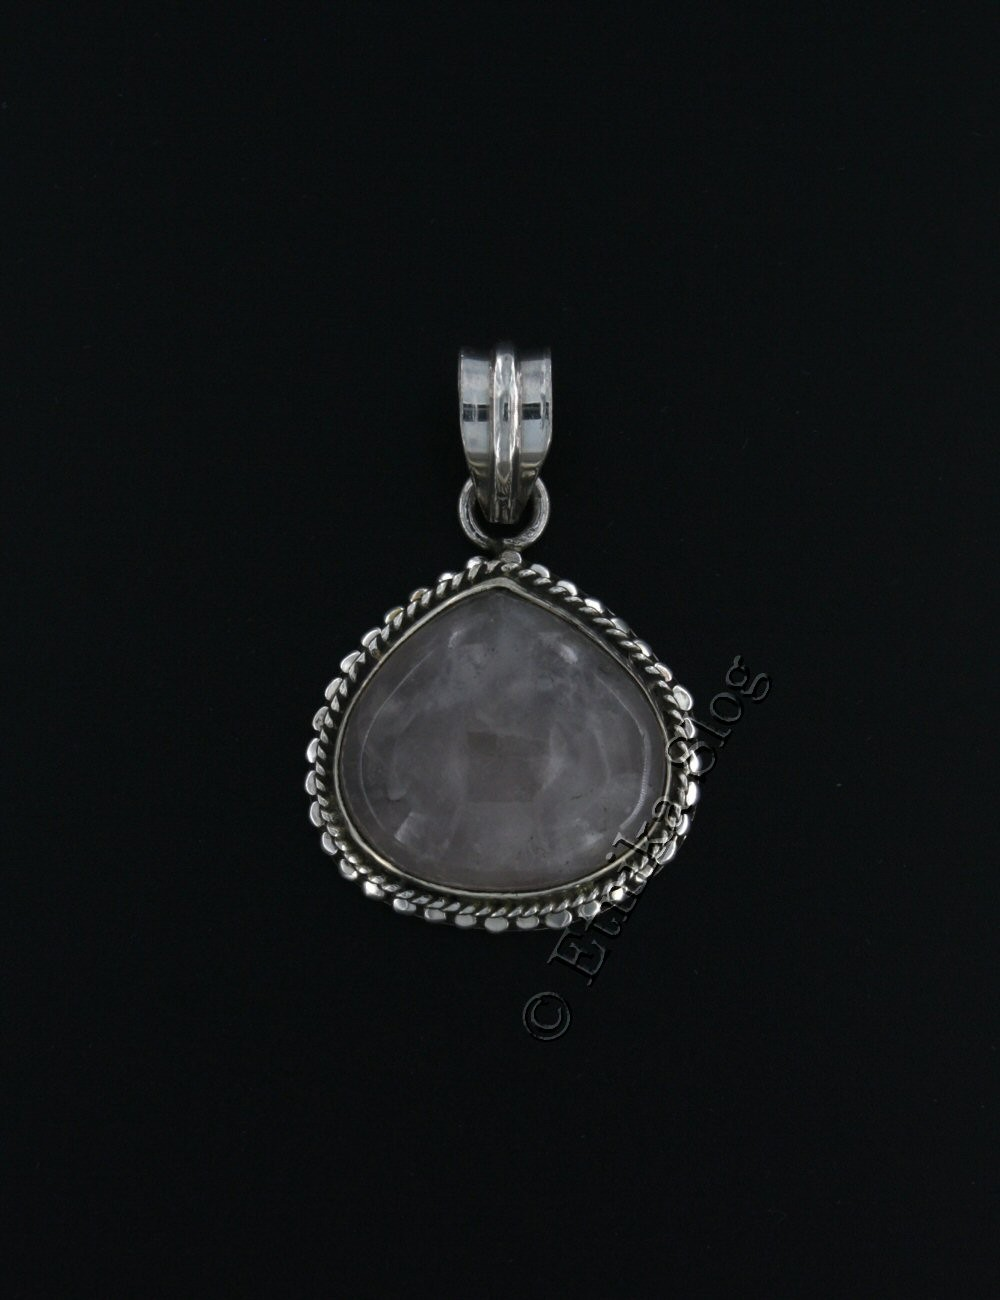 SILVER AND STONE PENDANTS ARG-PP1230-01 - Oriente Import S.r.l.